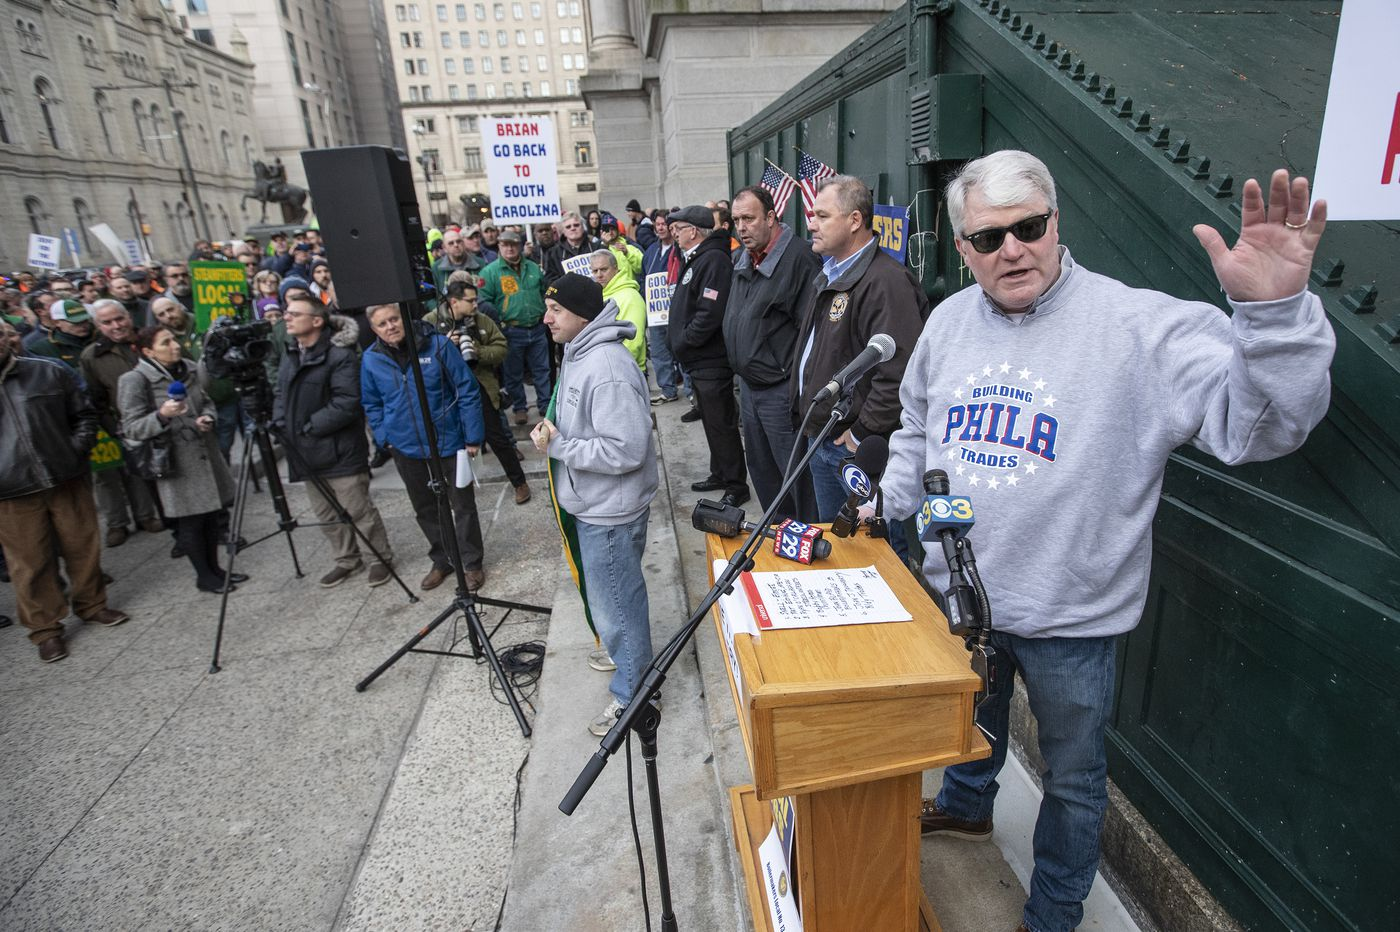 L&I fight: Labor says Philly has been too easy on 'underground' employers who build without permits